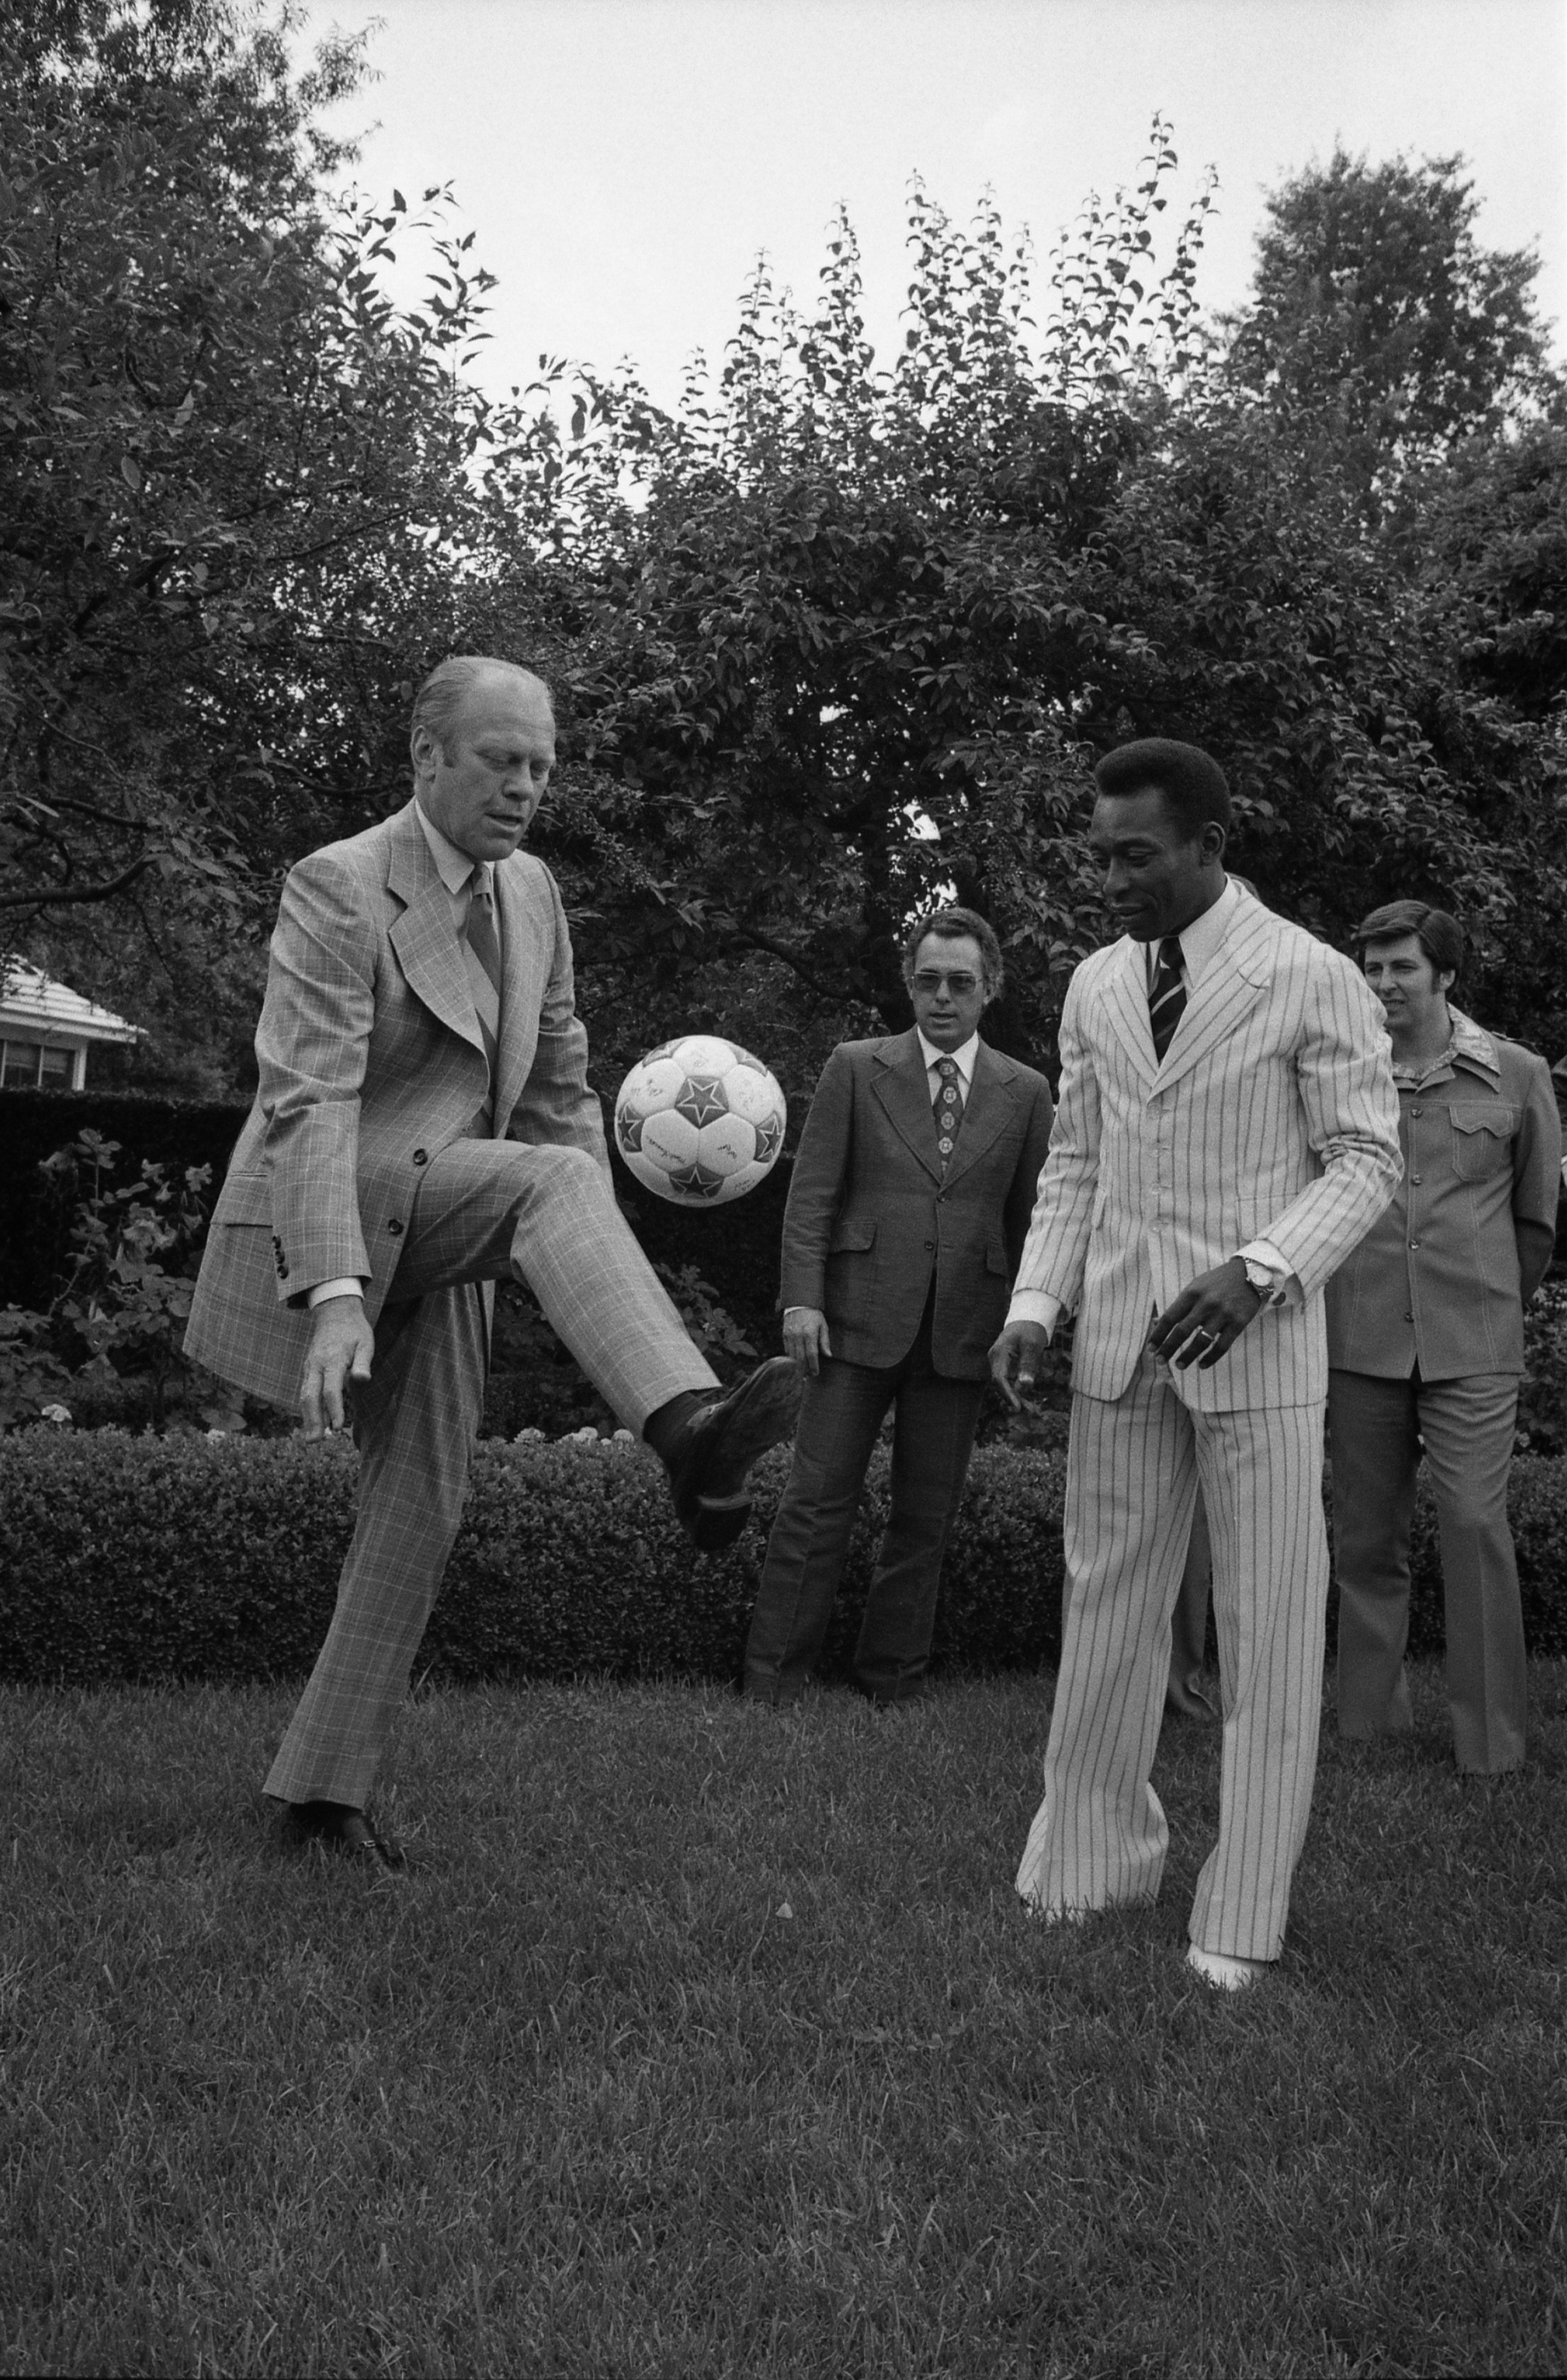 President Gerald R. Ford Juggling a Soccer Ball to Pele's Amusement, 06/28/1975. (National Archives Identifier 6829578)